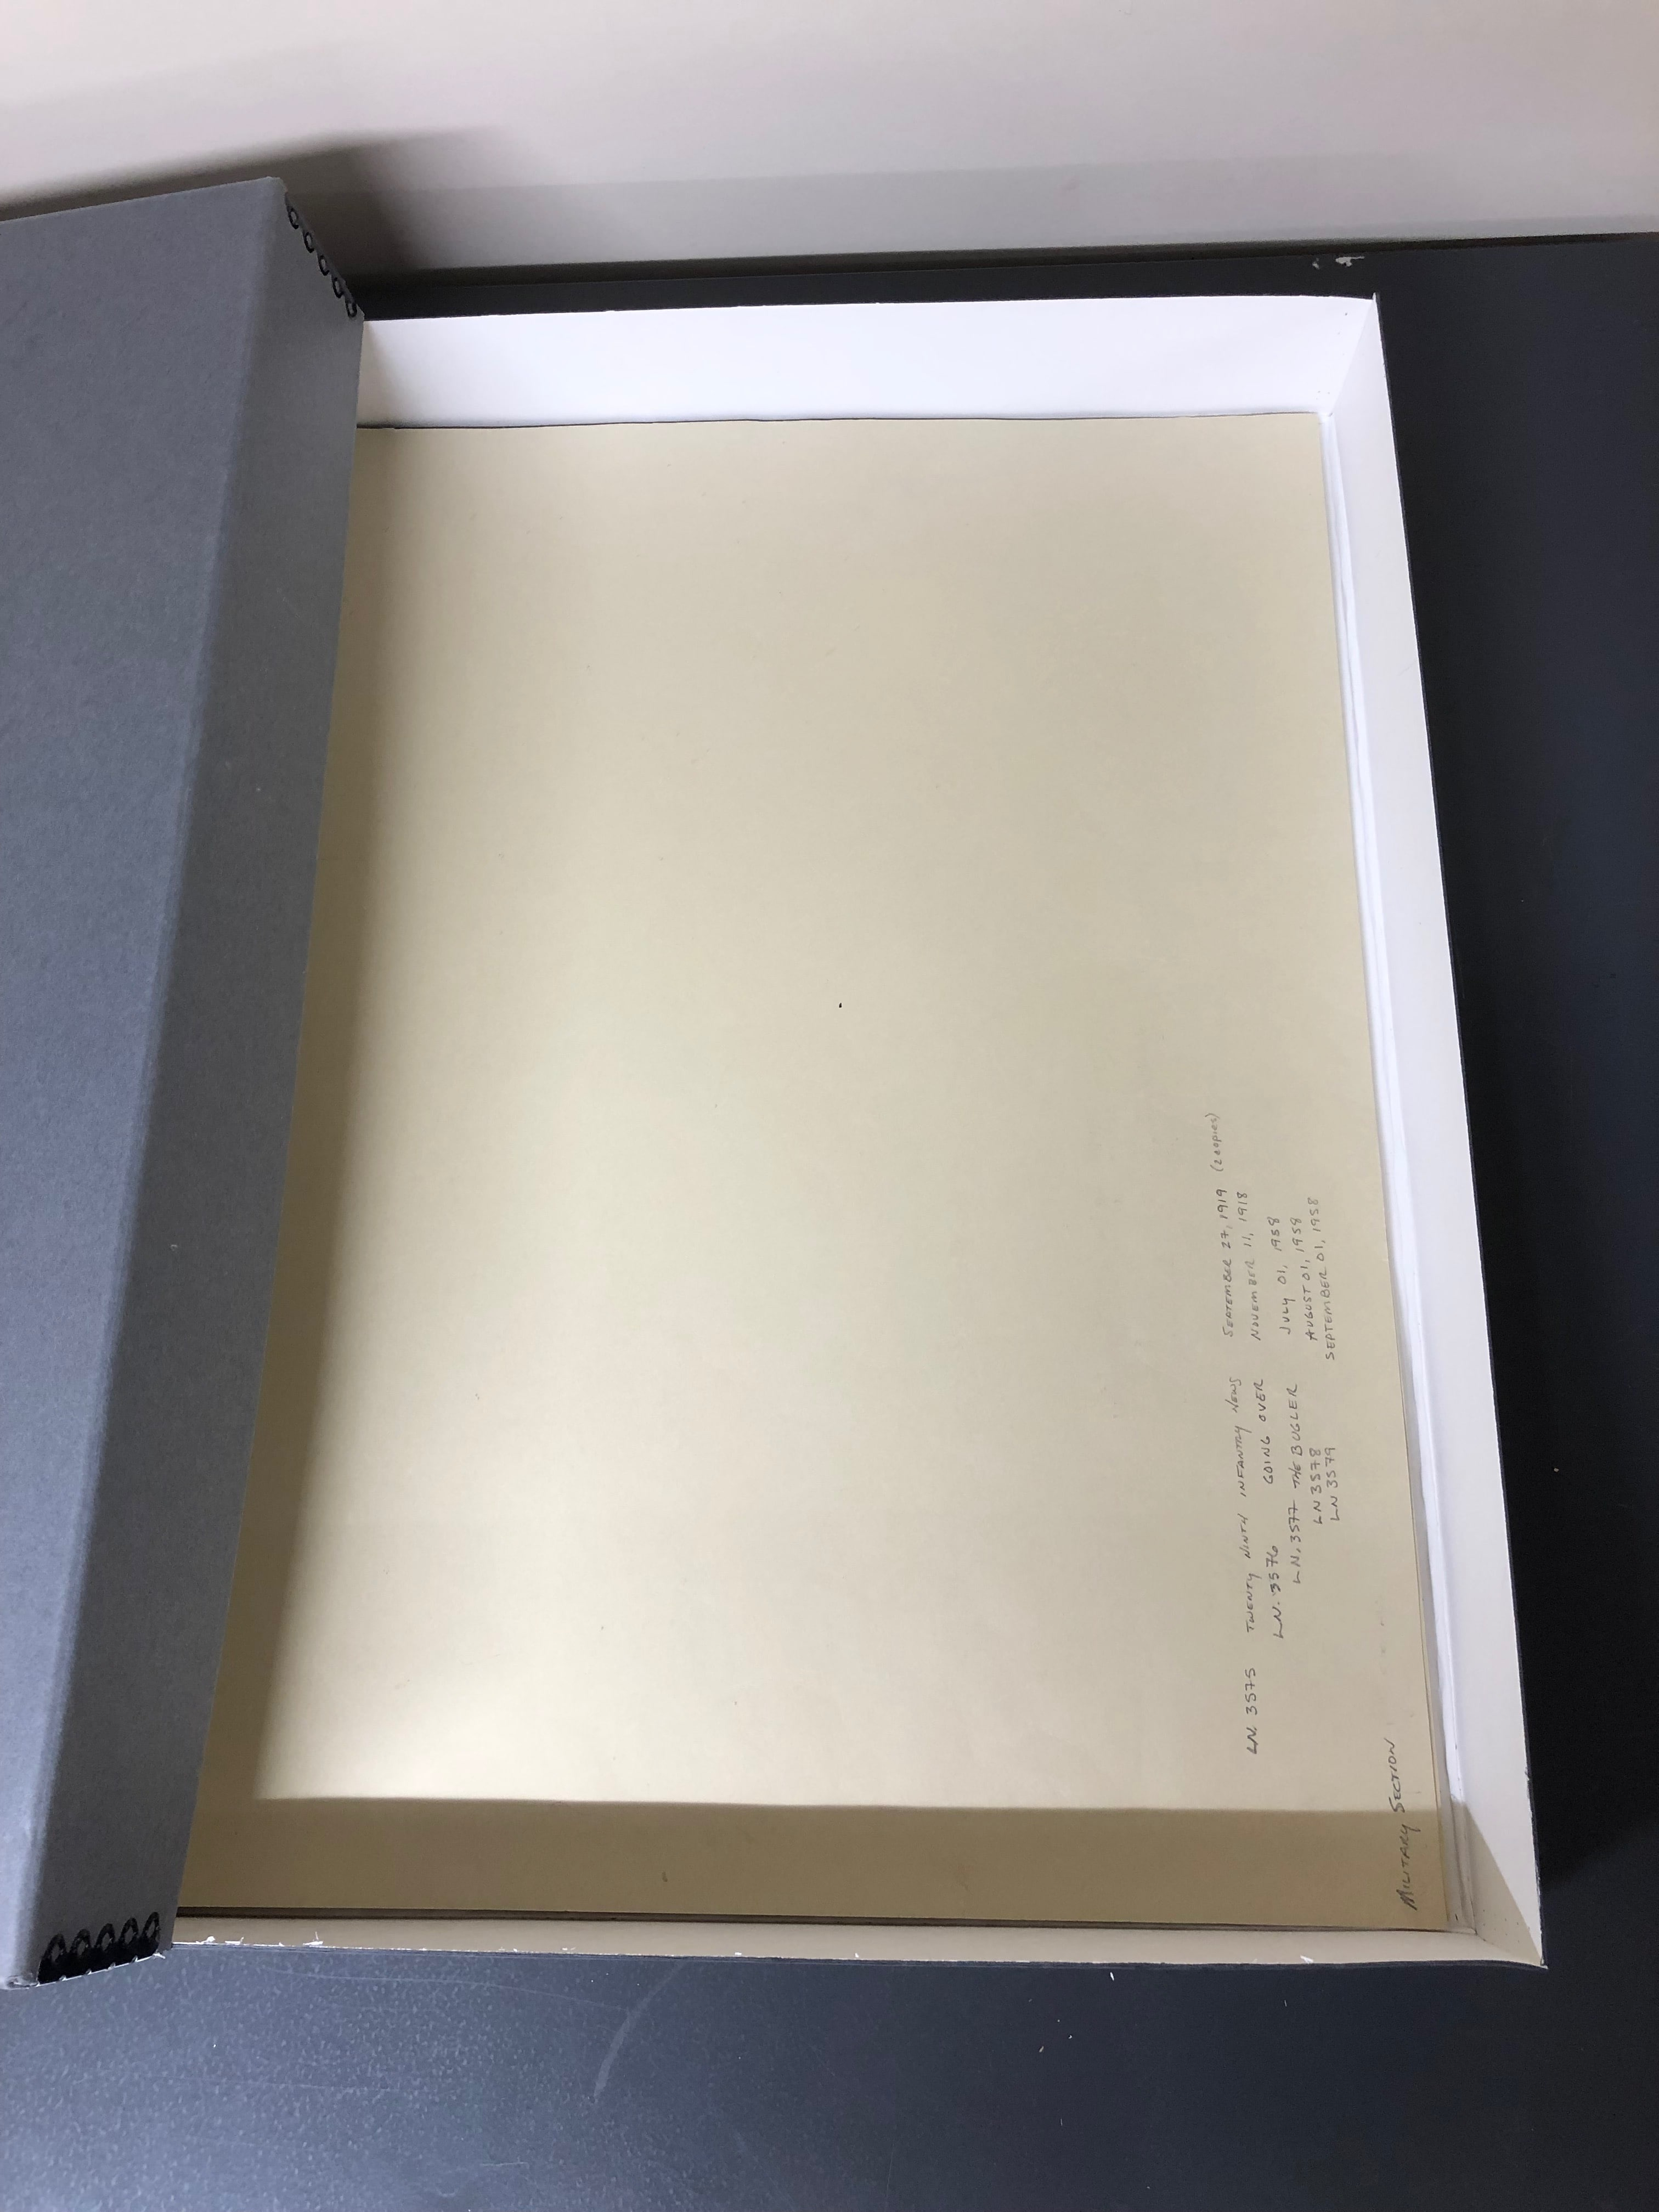 Gaylord Archival Deep Lid Print//Photo Preservation Box